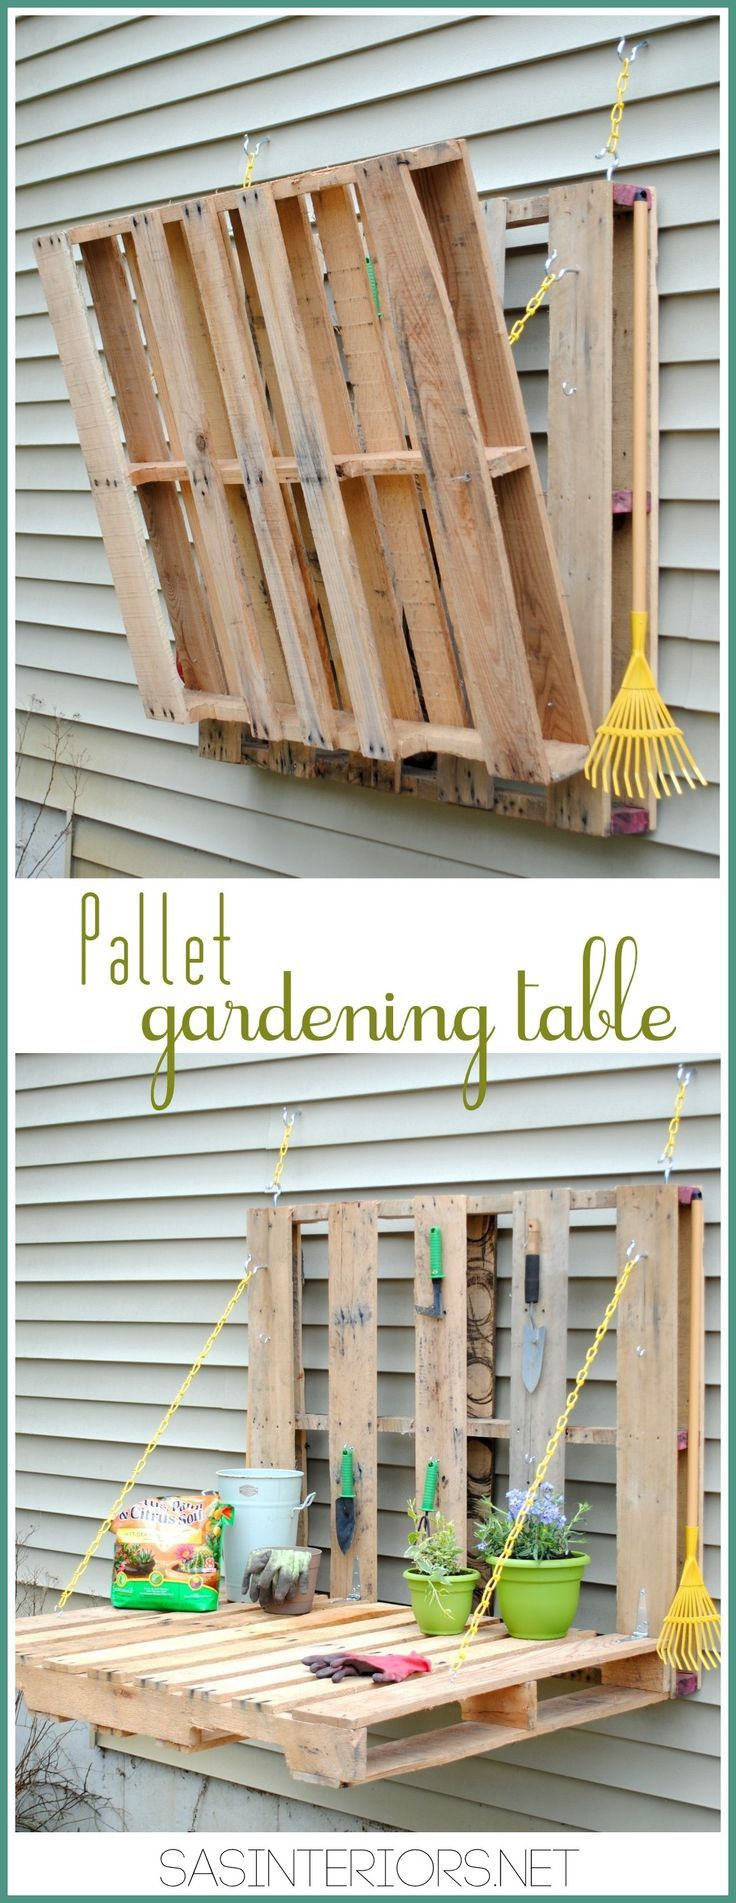 : Vertical Pallet Gardening Table -